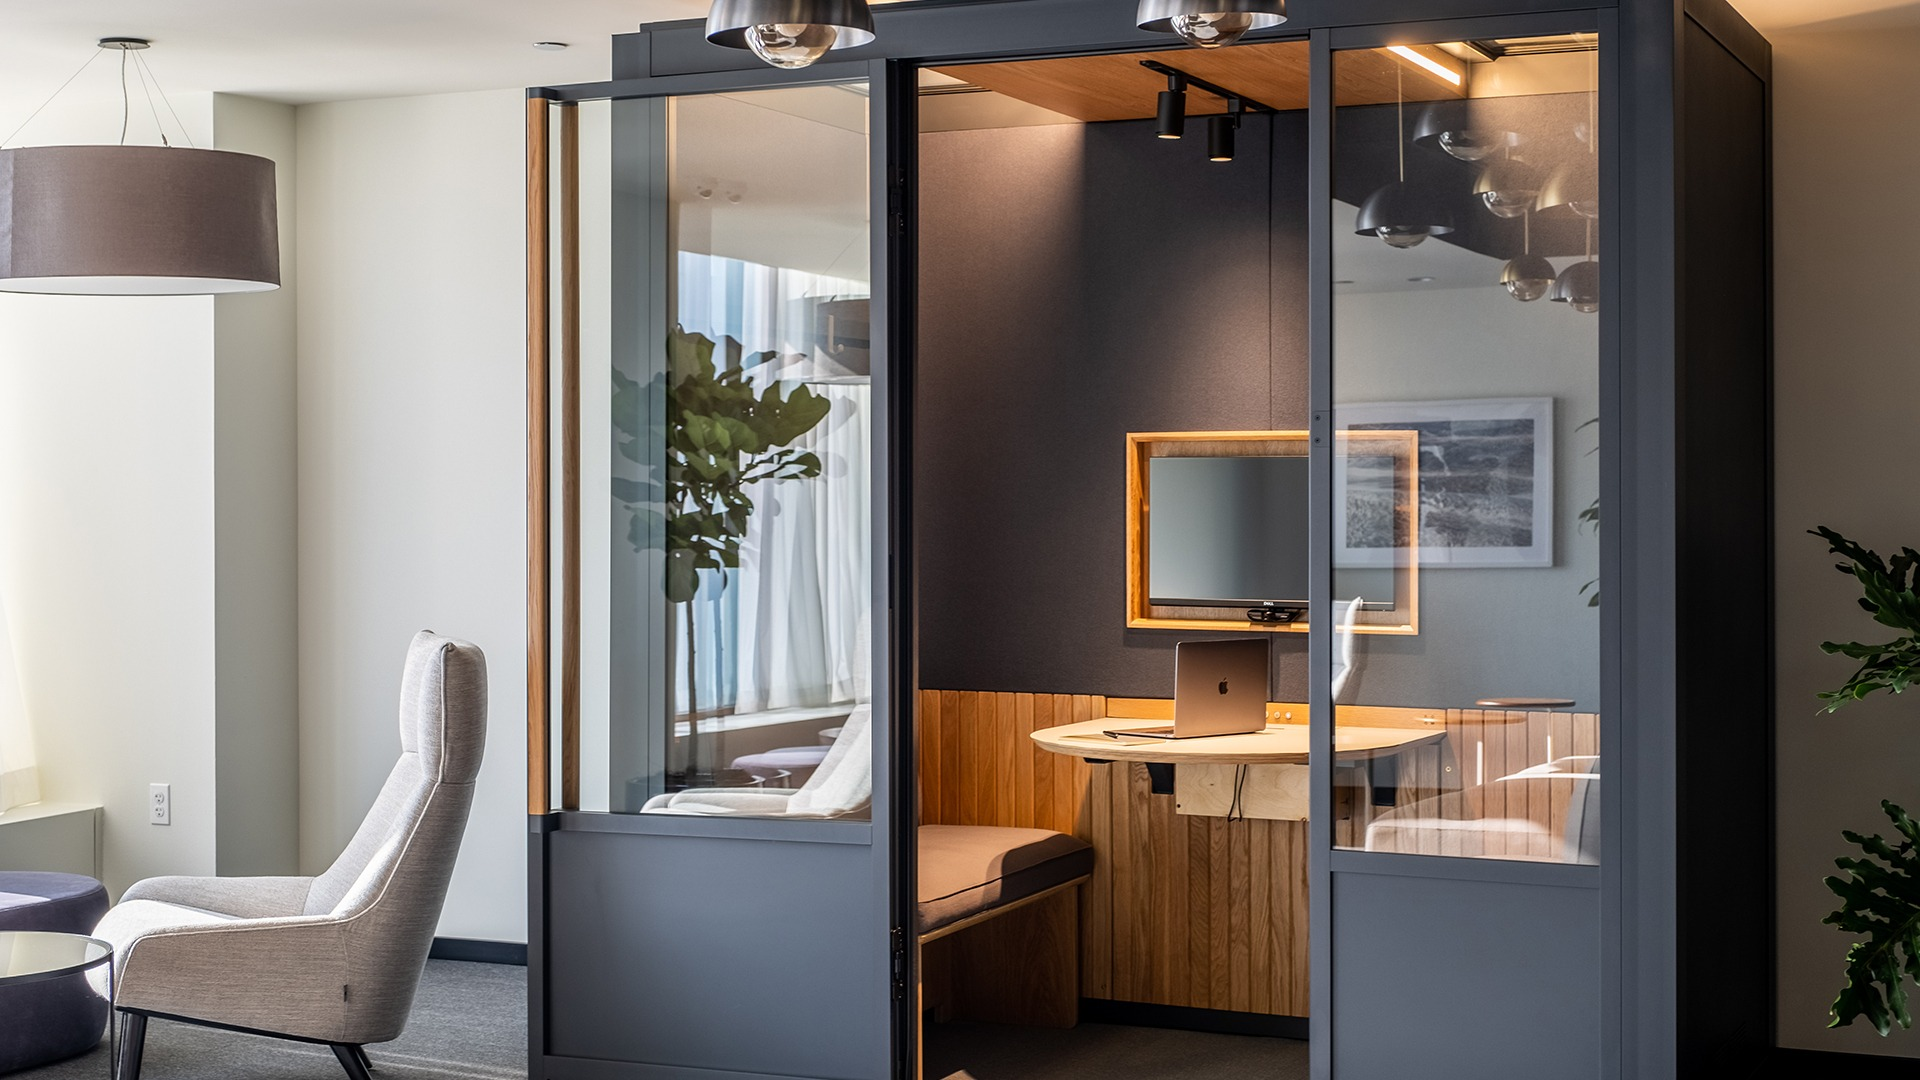 The office of tomorrow may have modular meeting rooms, which can be used to create a workplace that's specific and multifunctional.